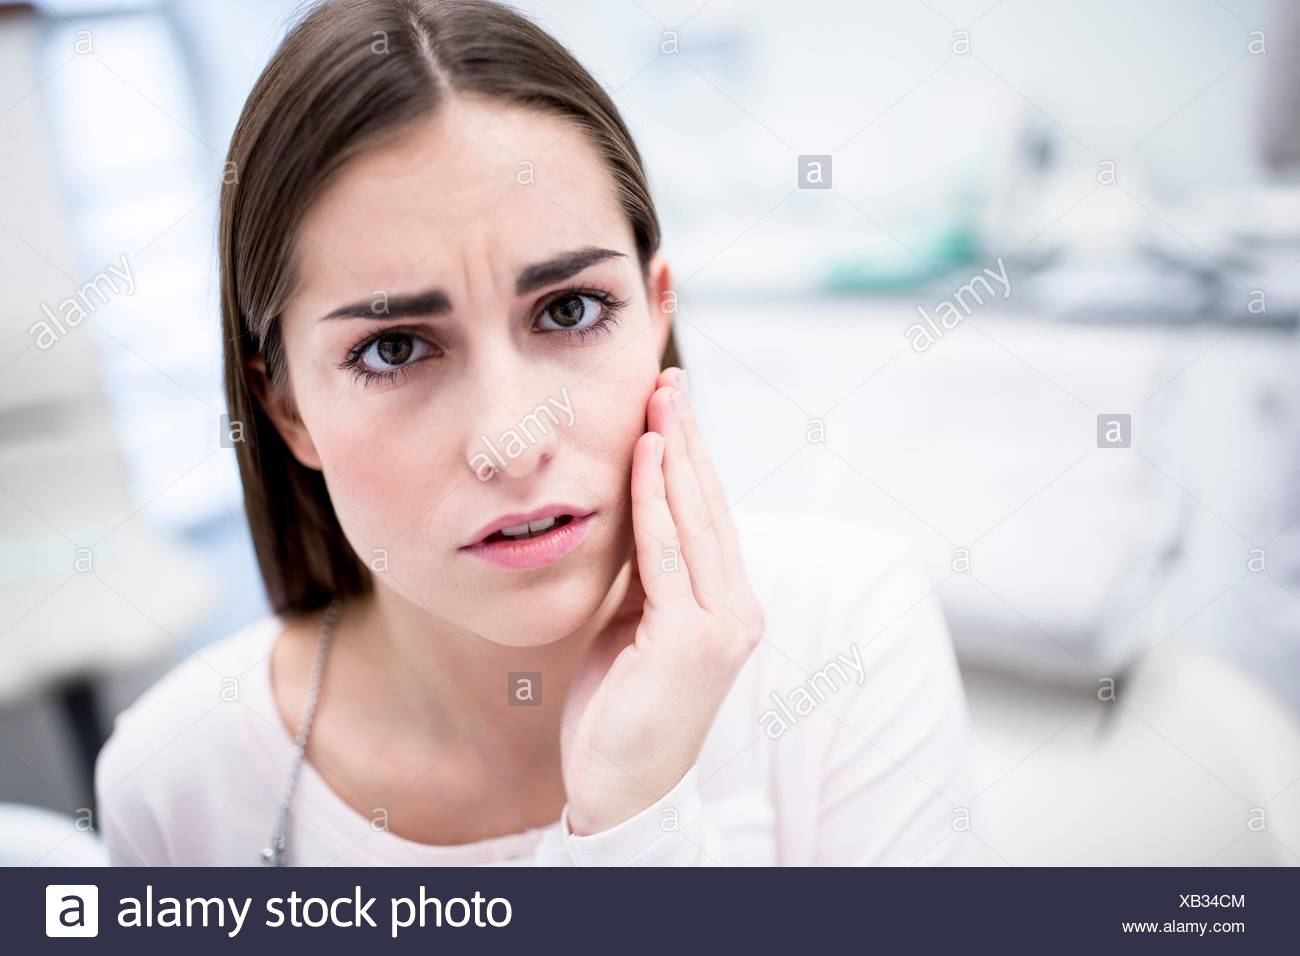 MODEL RELEASED. Young woman suffering from toothache, portrait. - Stock Image